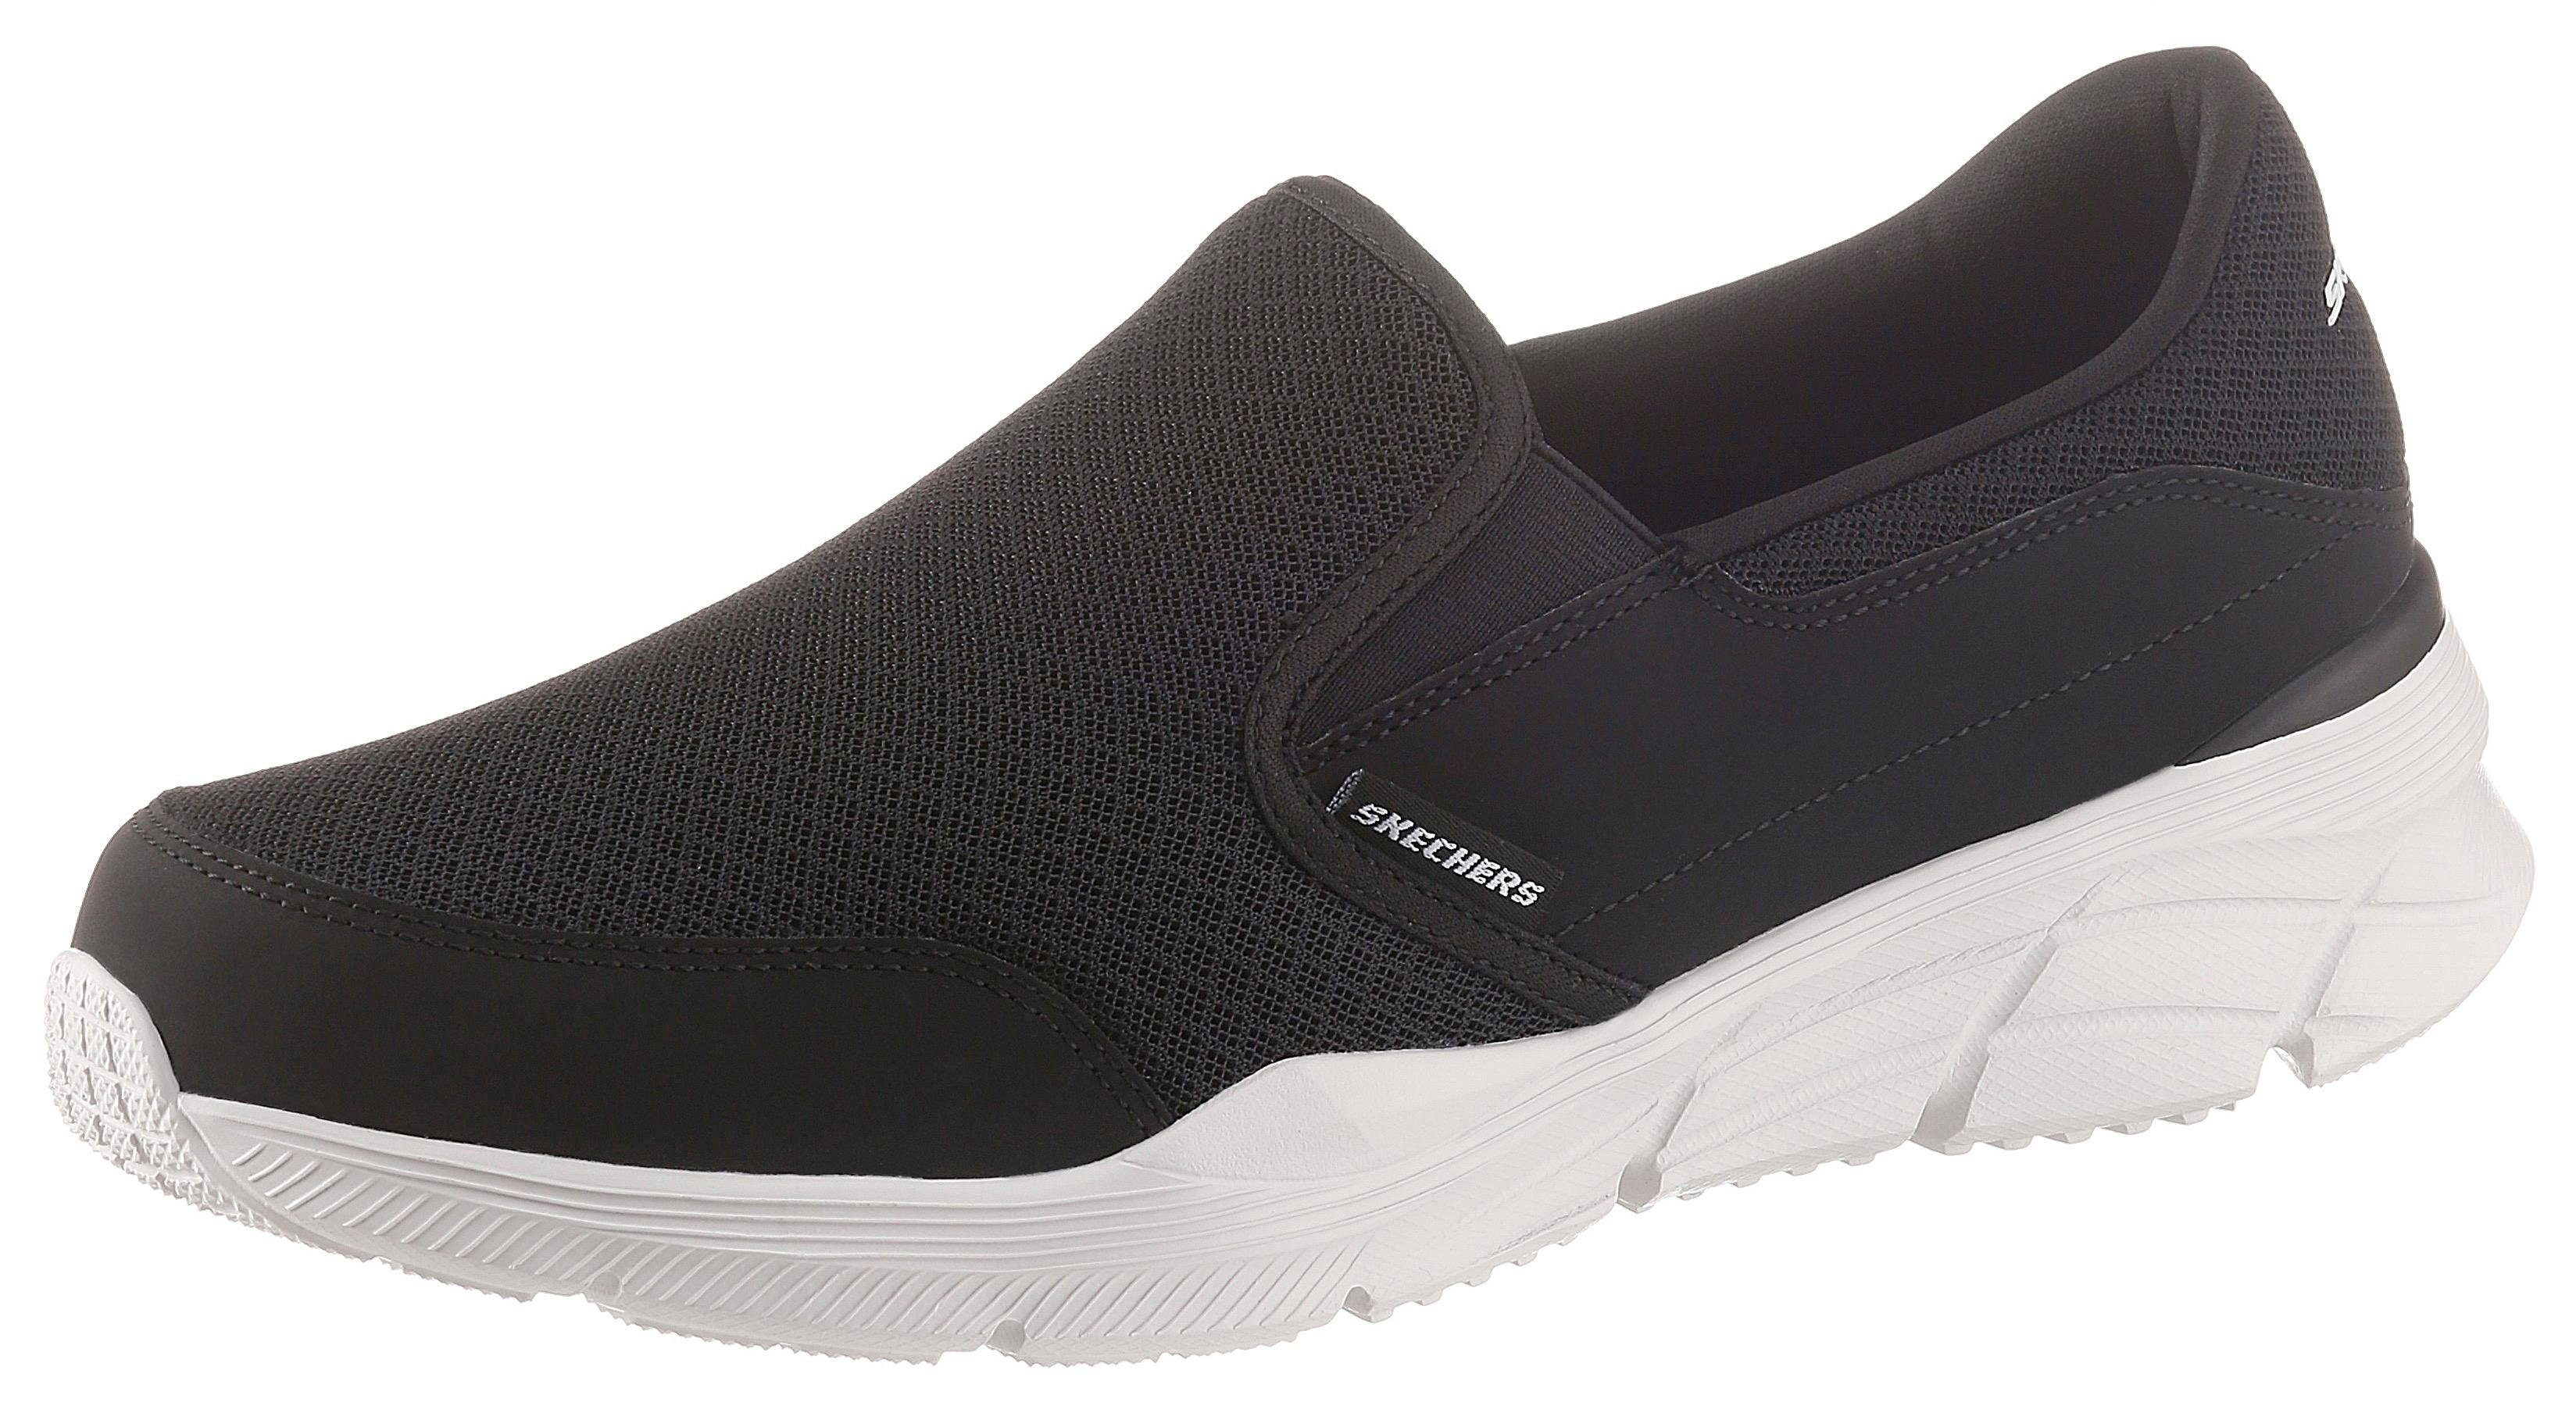 Skechers »Equalizer 4.0« Slip On Sneaker mit Air Cooled qFrin